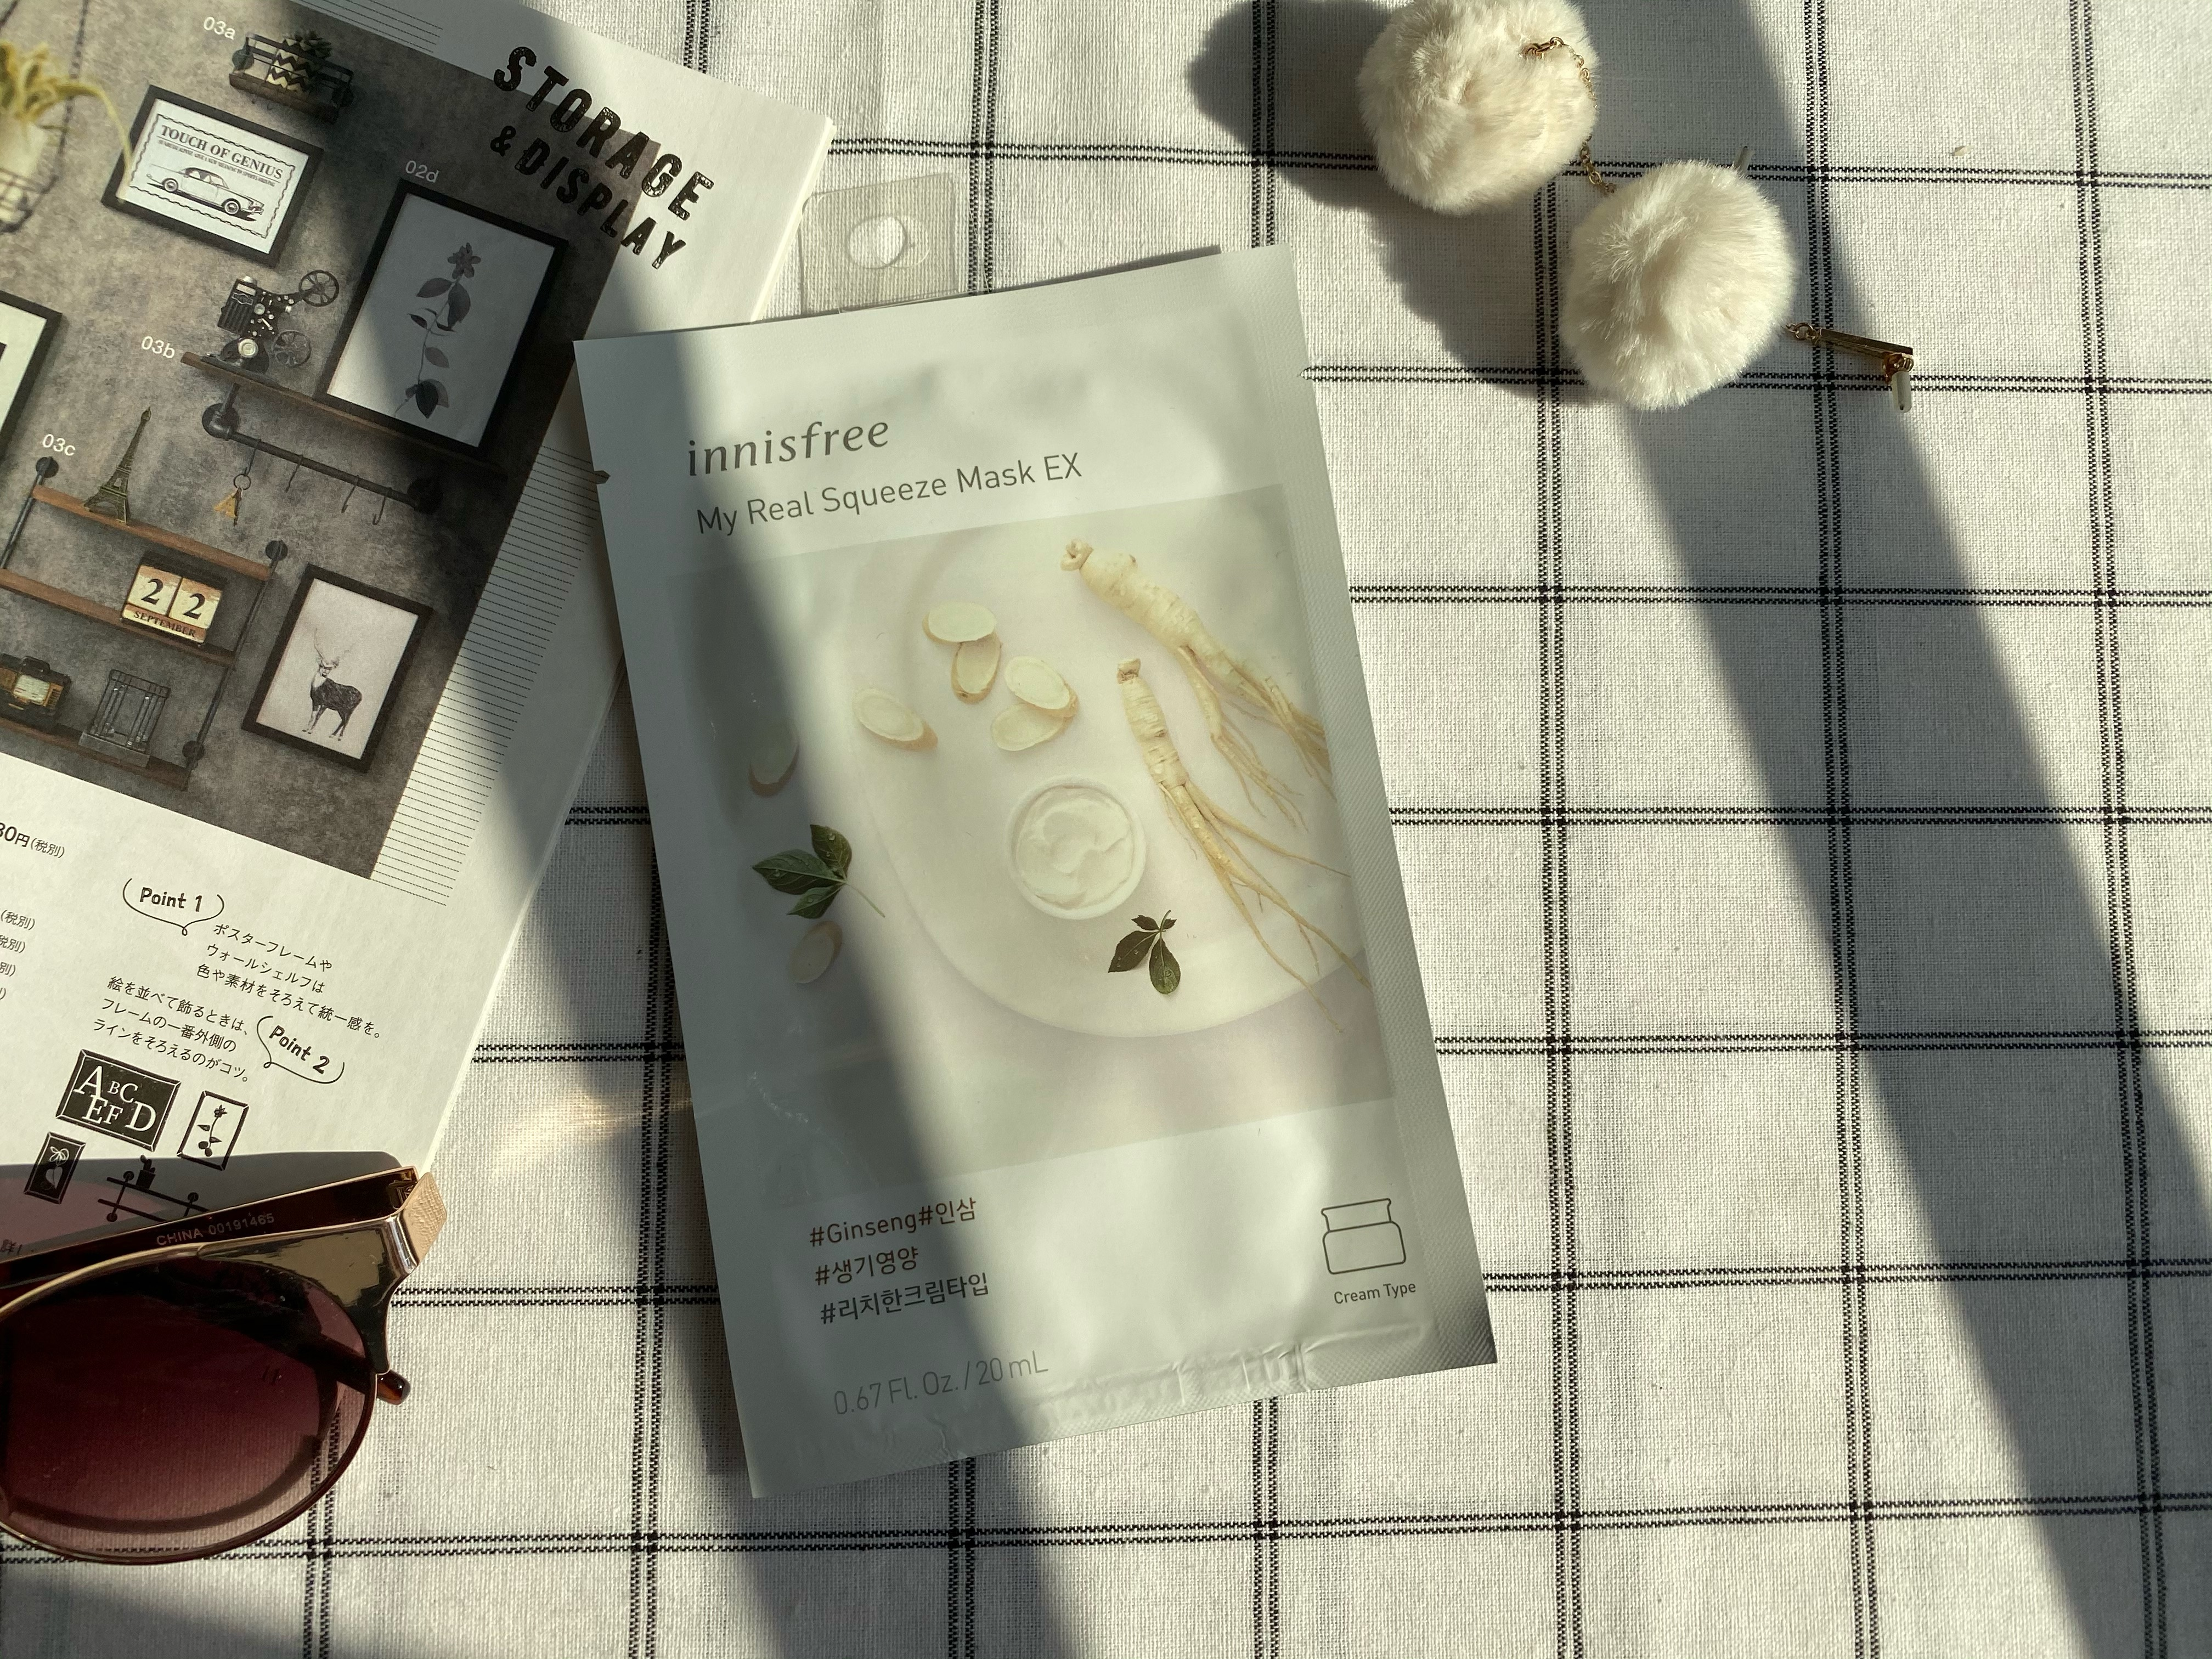 REVIEW | Innisfree My Real Squeeze Mask #Ginseng